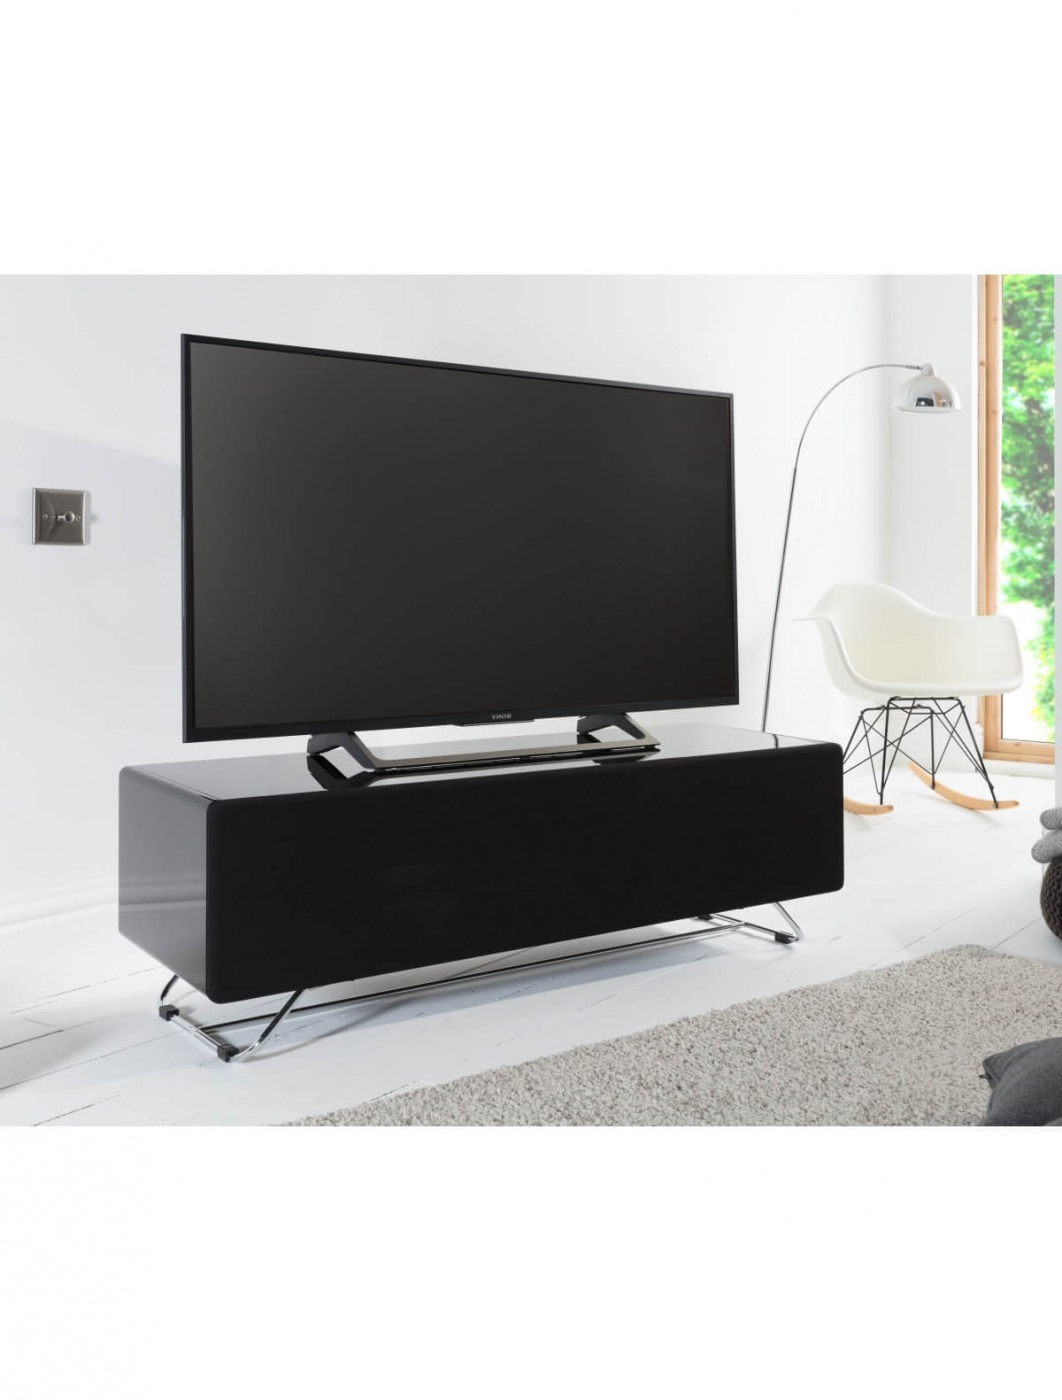 2018 Chromium Tv Stands Throughout Tv Stand Black Chromium Concept 1200mm Cro2 1200cpt Bk (View 2 of 25)